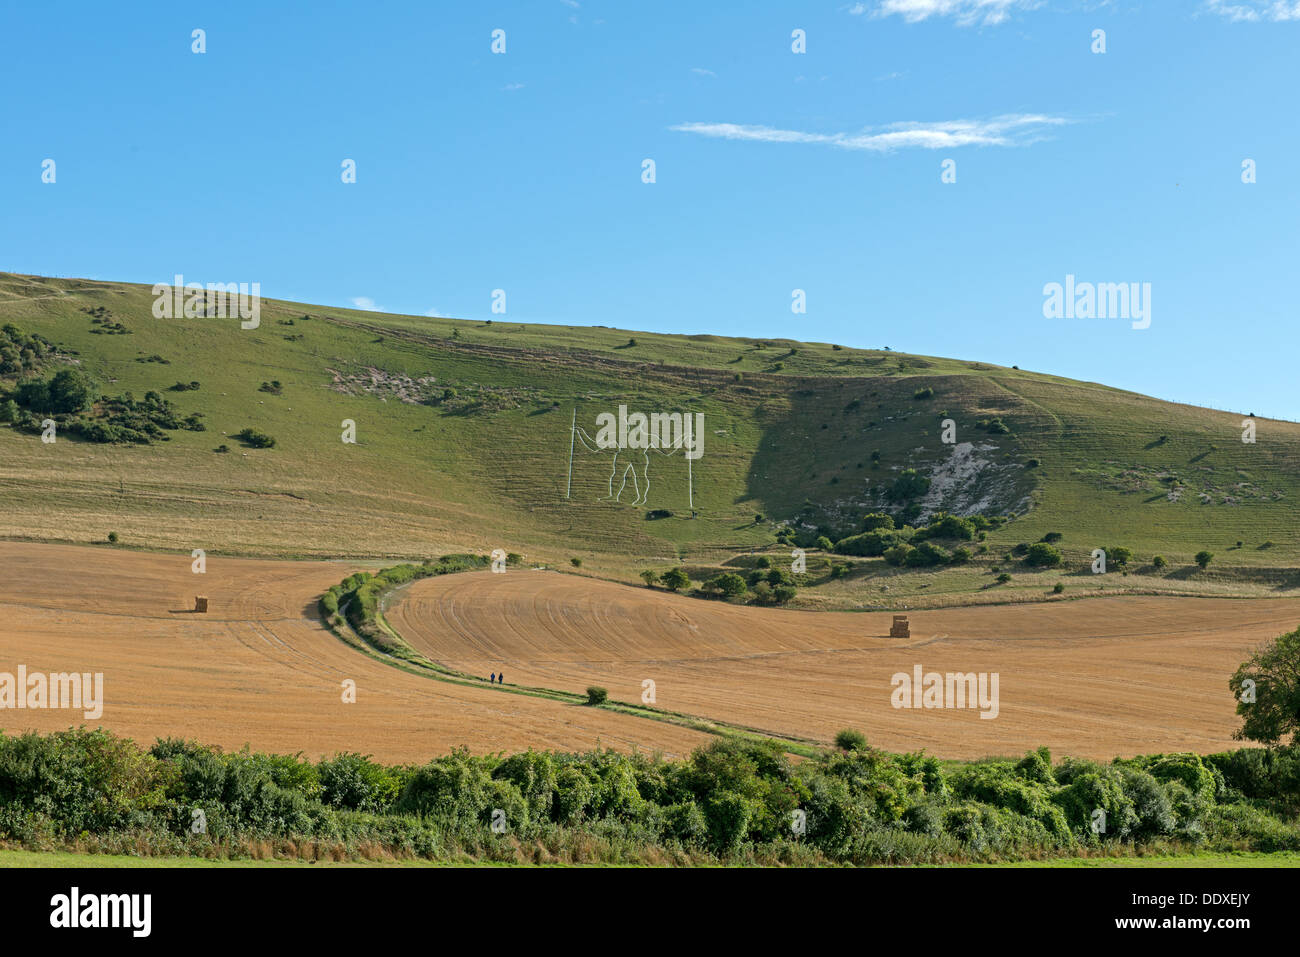 Lanscape View Of The Long Man Of Wilmington, Wilmington,East Sussex, England, Uk - Stock Image